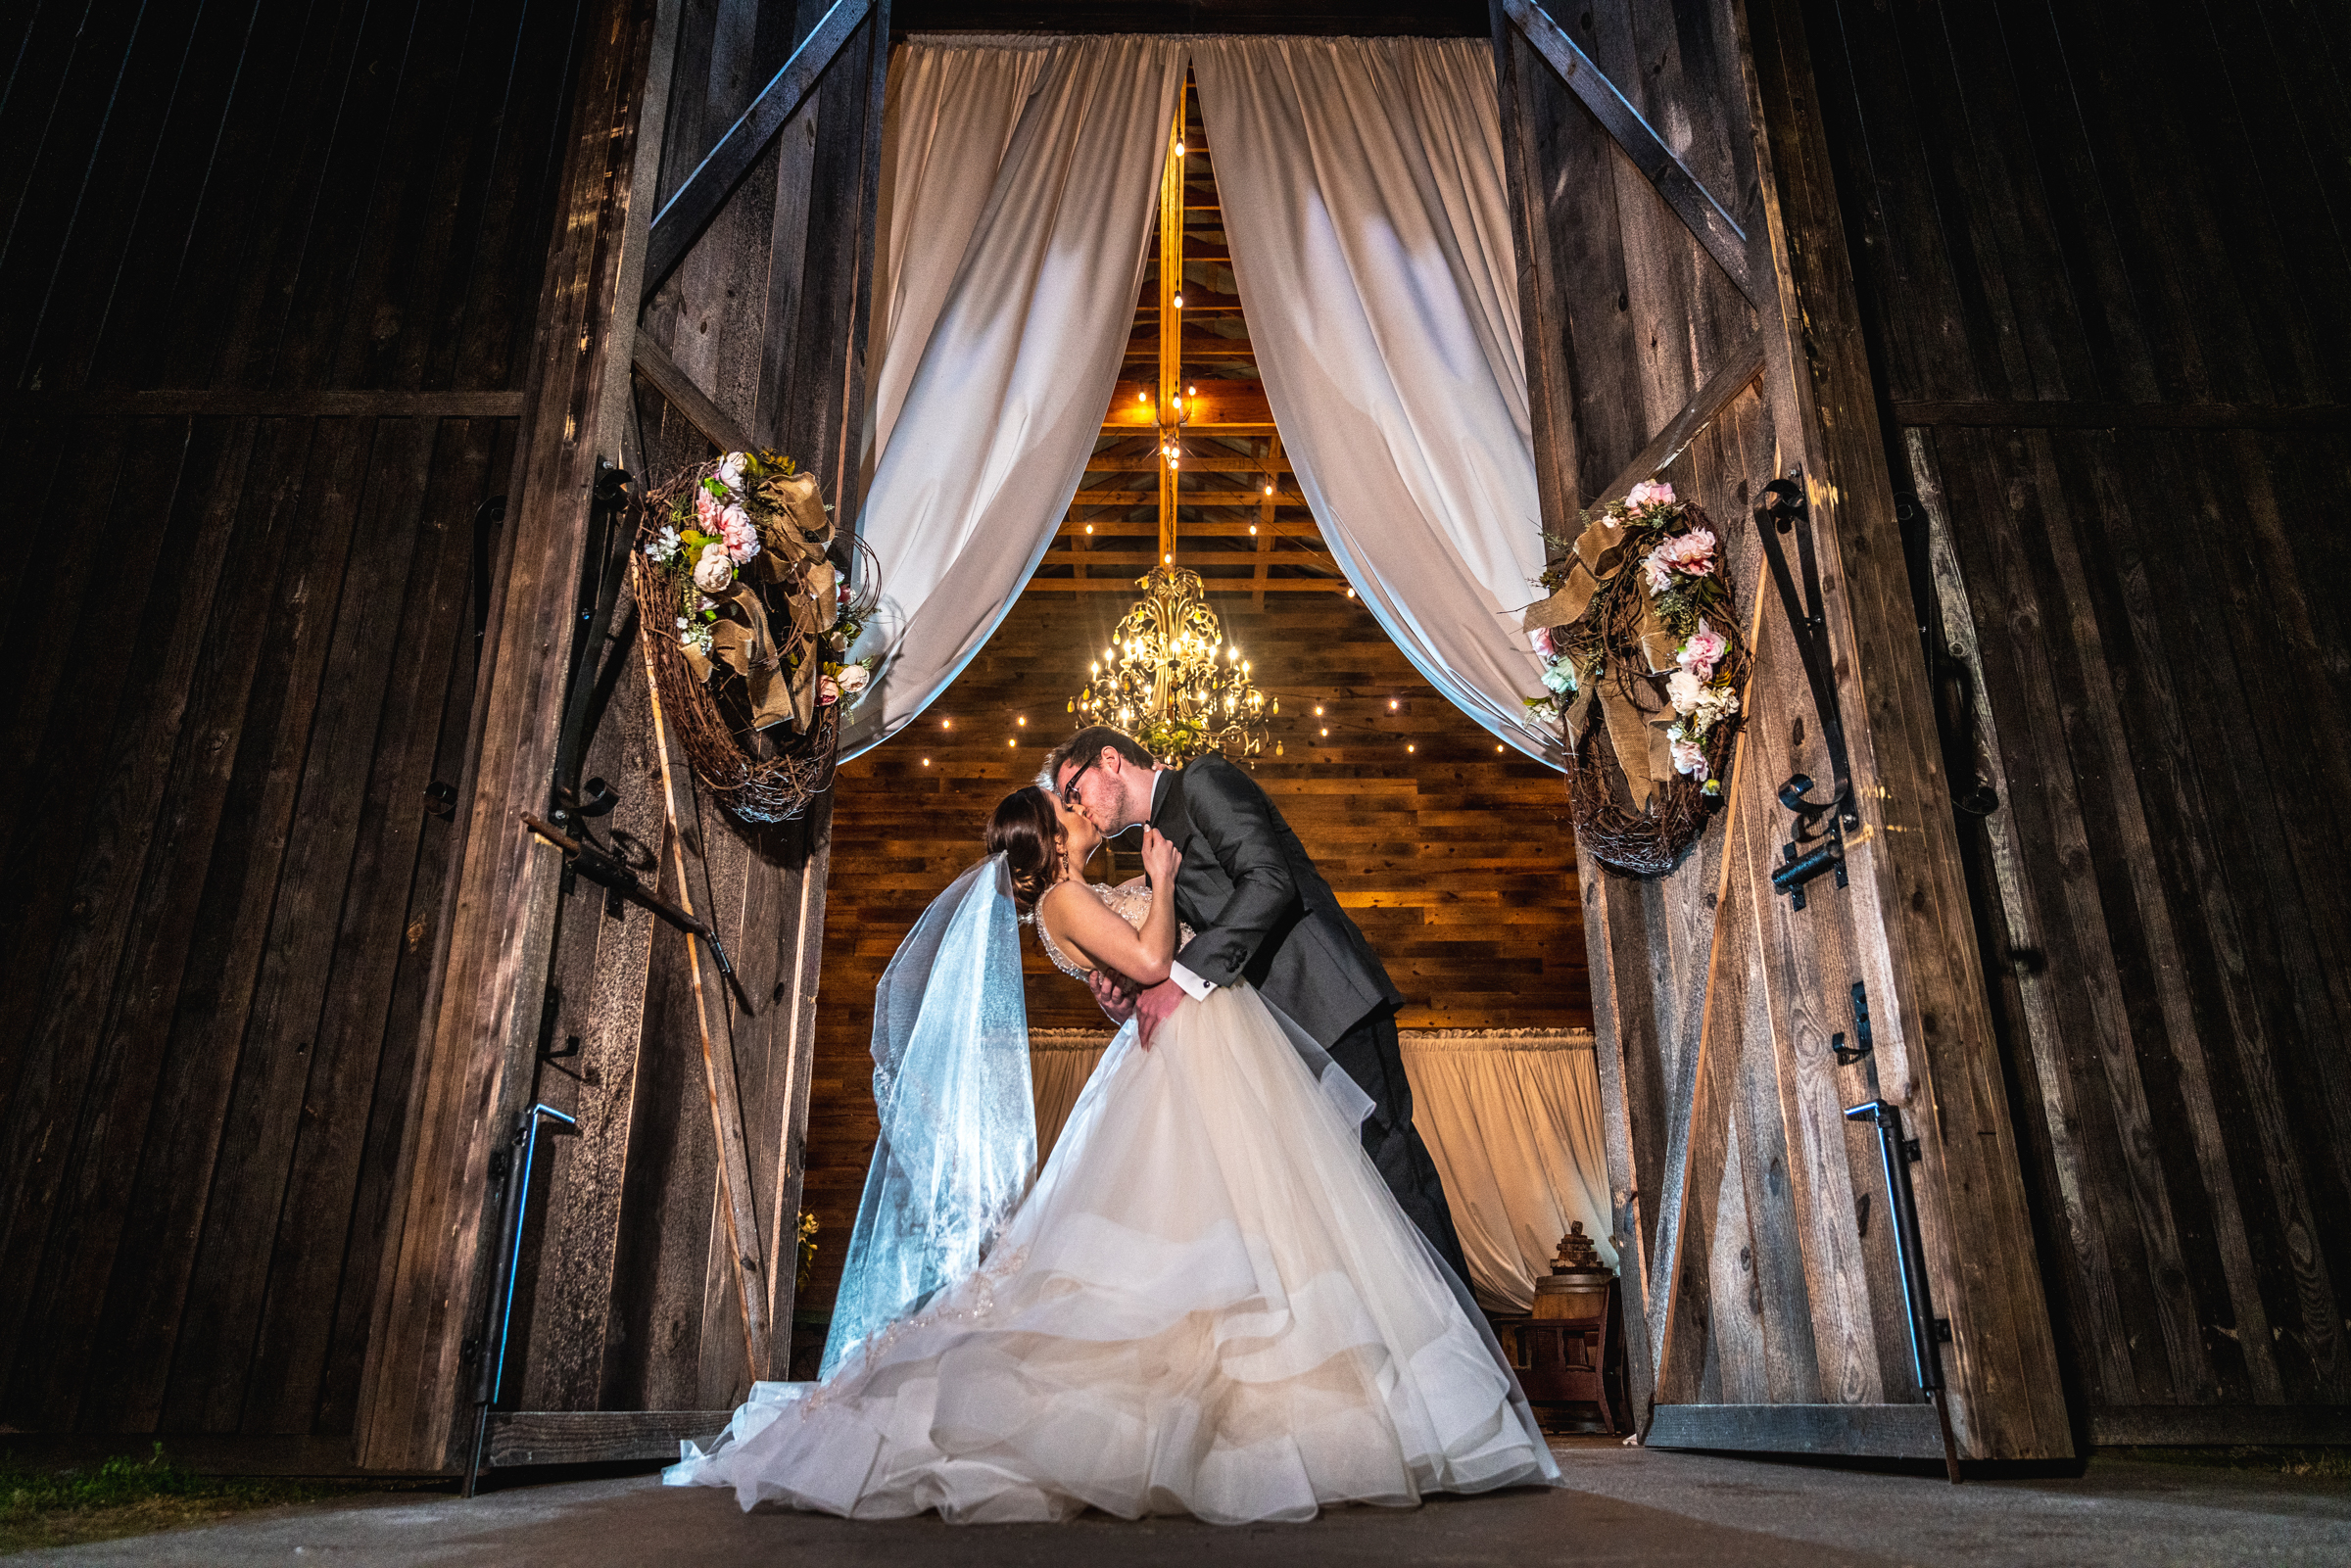 Wedding-couple-barn-water-oaks-farm-photographers.jpg